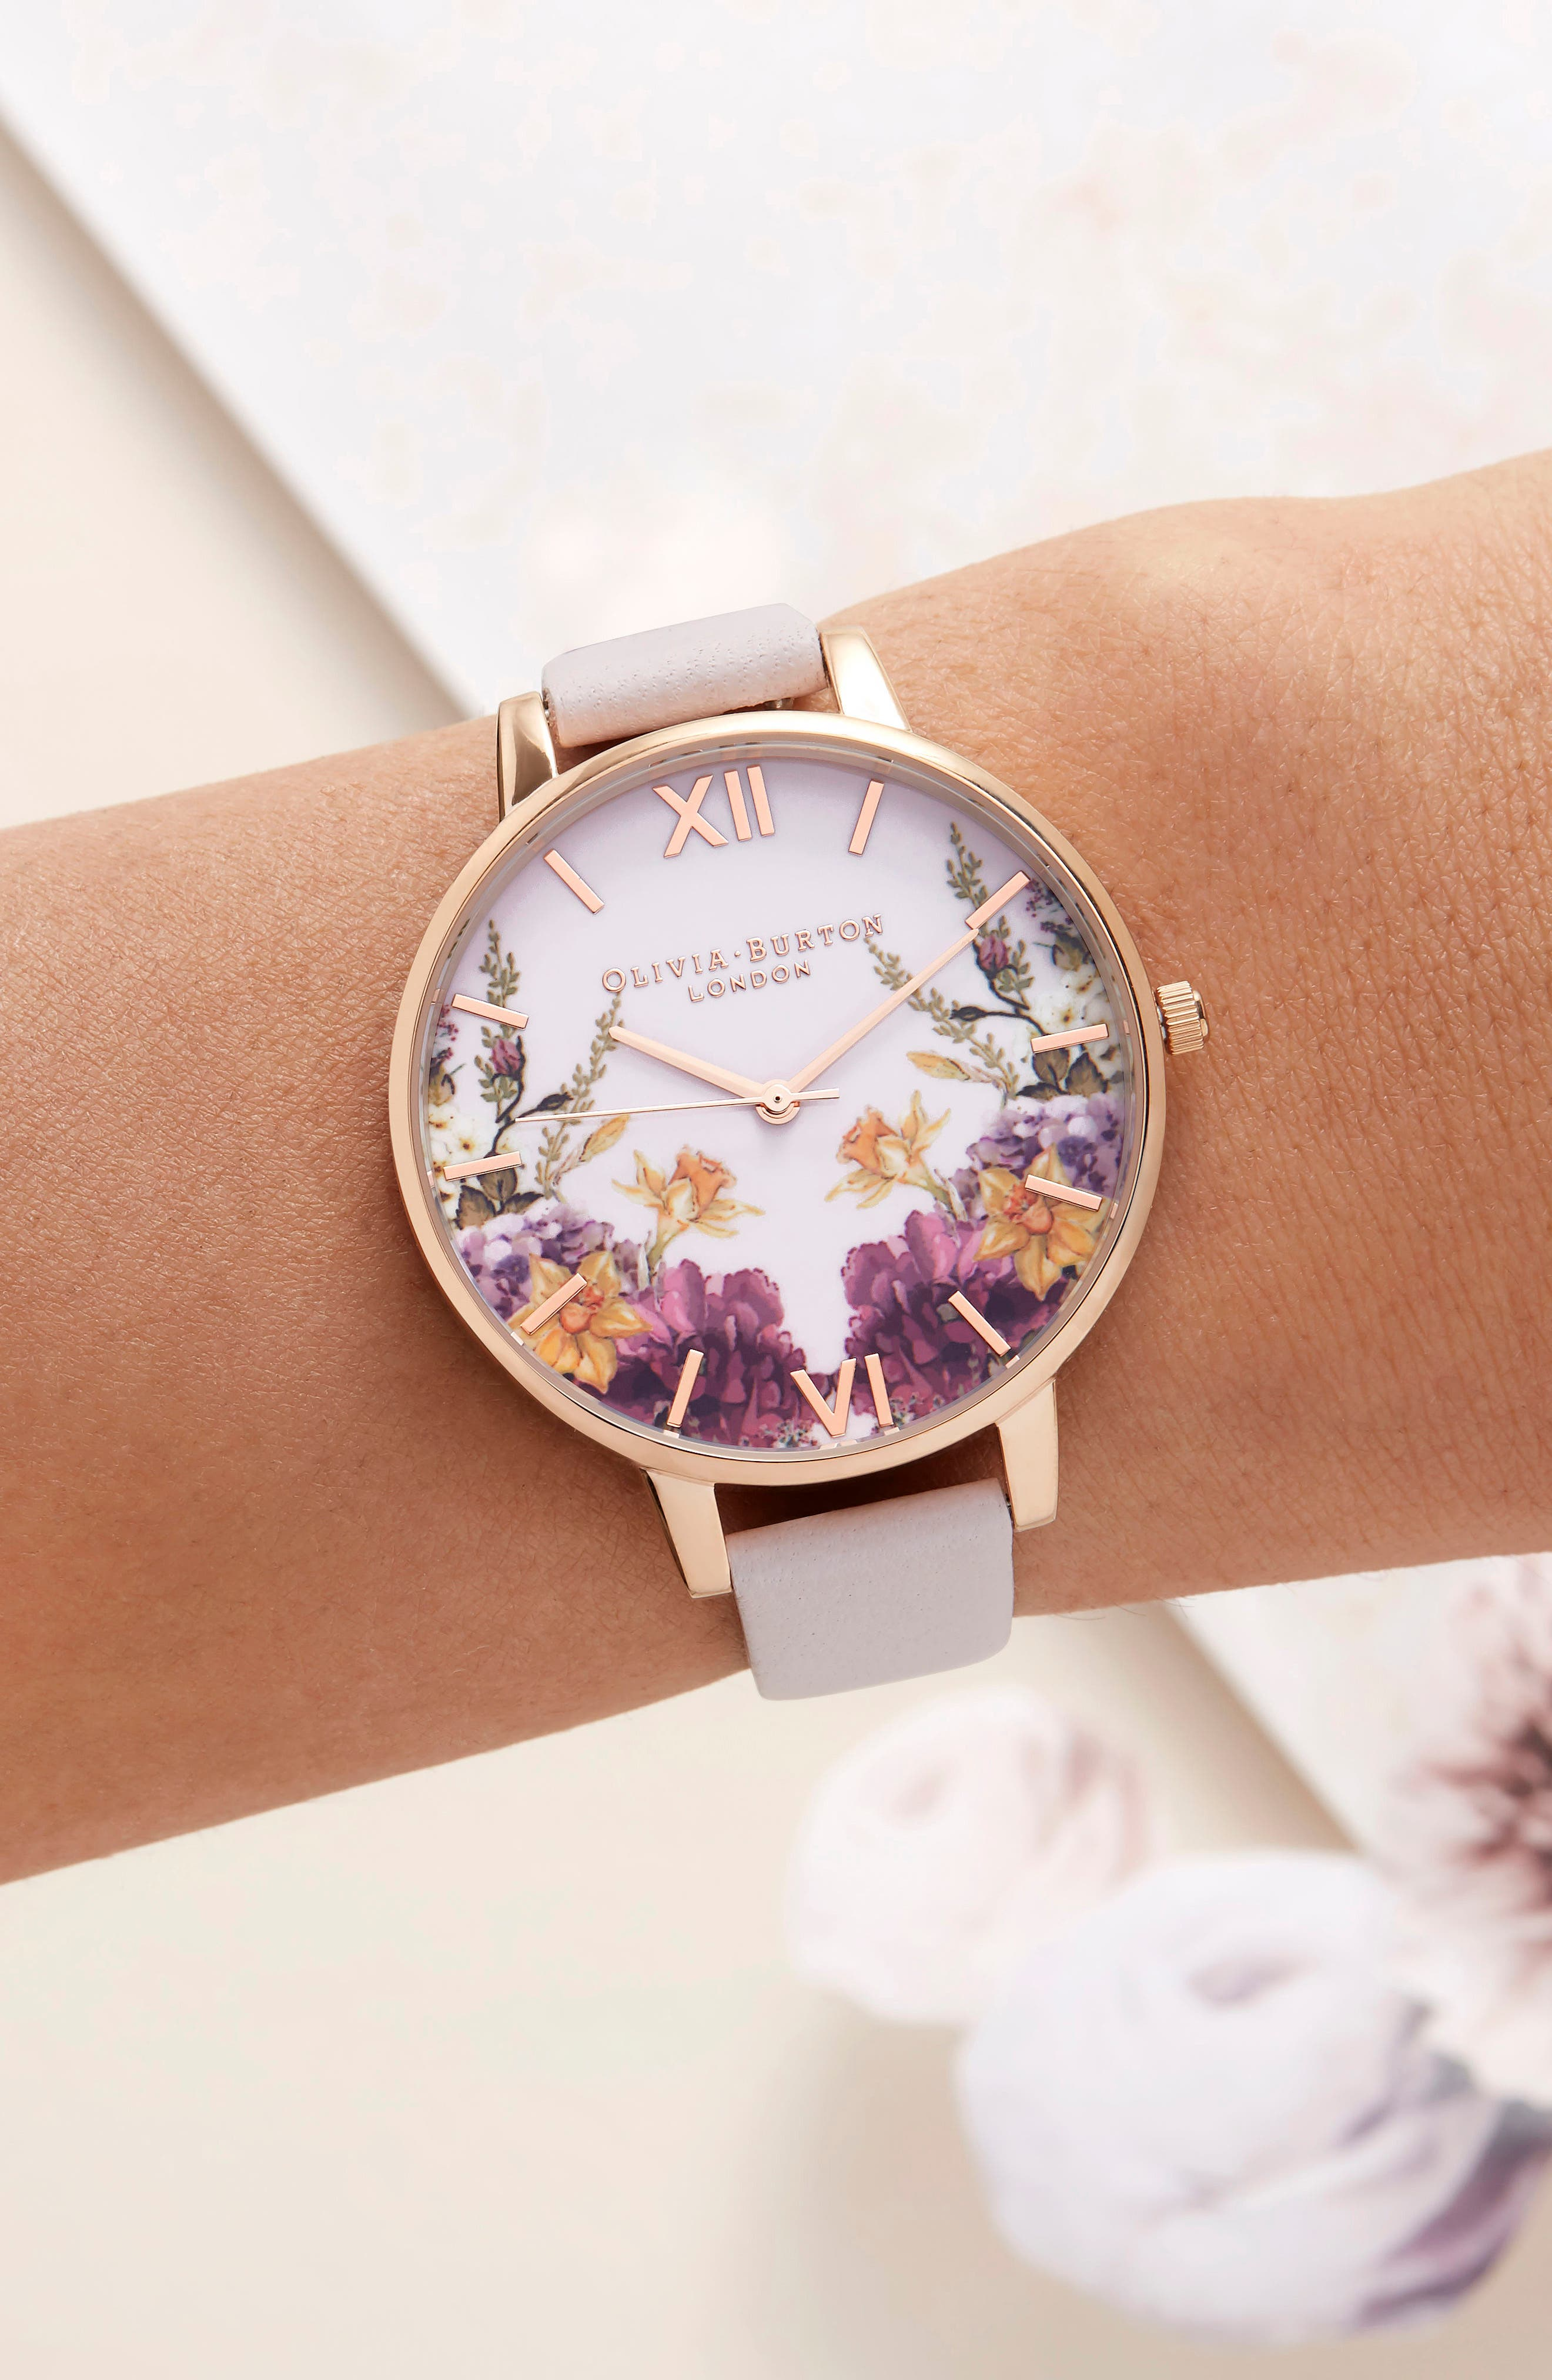 Enchanted Garden Leather Strap Watch, 38mm,                             Alternate thumbnail 7, color,                             BLOSSOM/ PINK/ ROSE GOLD